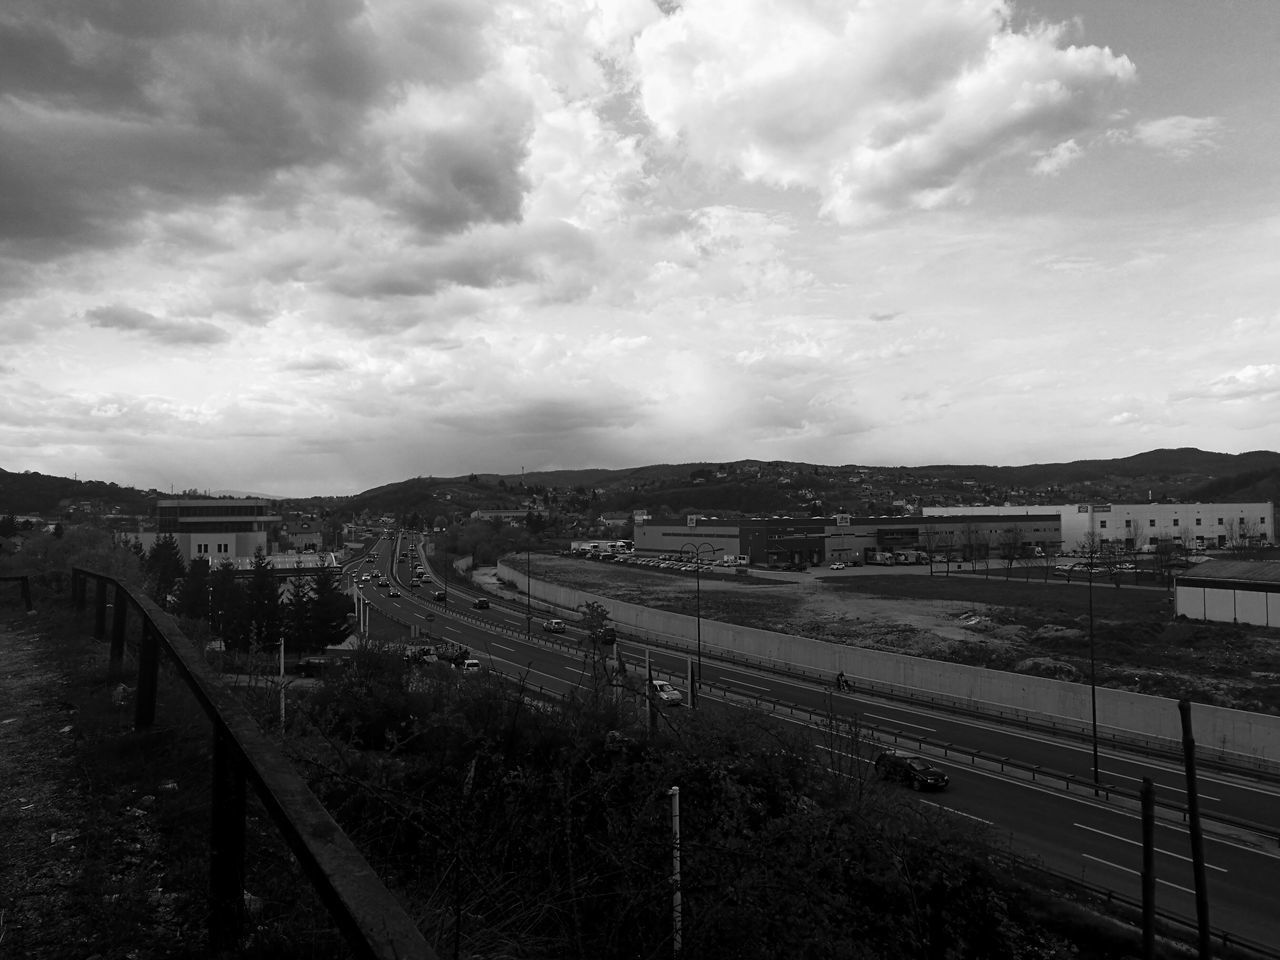 Busy day on the highway Cloud - Sky Transportation Sky Train - Vehicle No People City Built Structure Outdoors Architecture Day Scenics Tranquility Grass Windows WindowsXP Background Screensaver Huawei P9 Leica Leicaphotography Leica Dual Camera HuaweiP9shots Huaweip9photos Leica Lens Highway Highways&Freeways